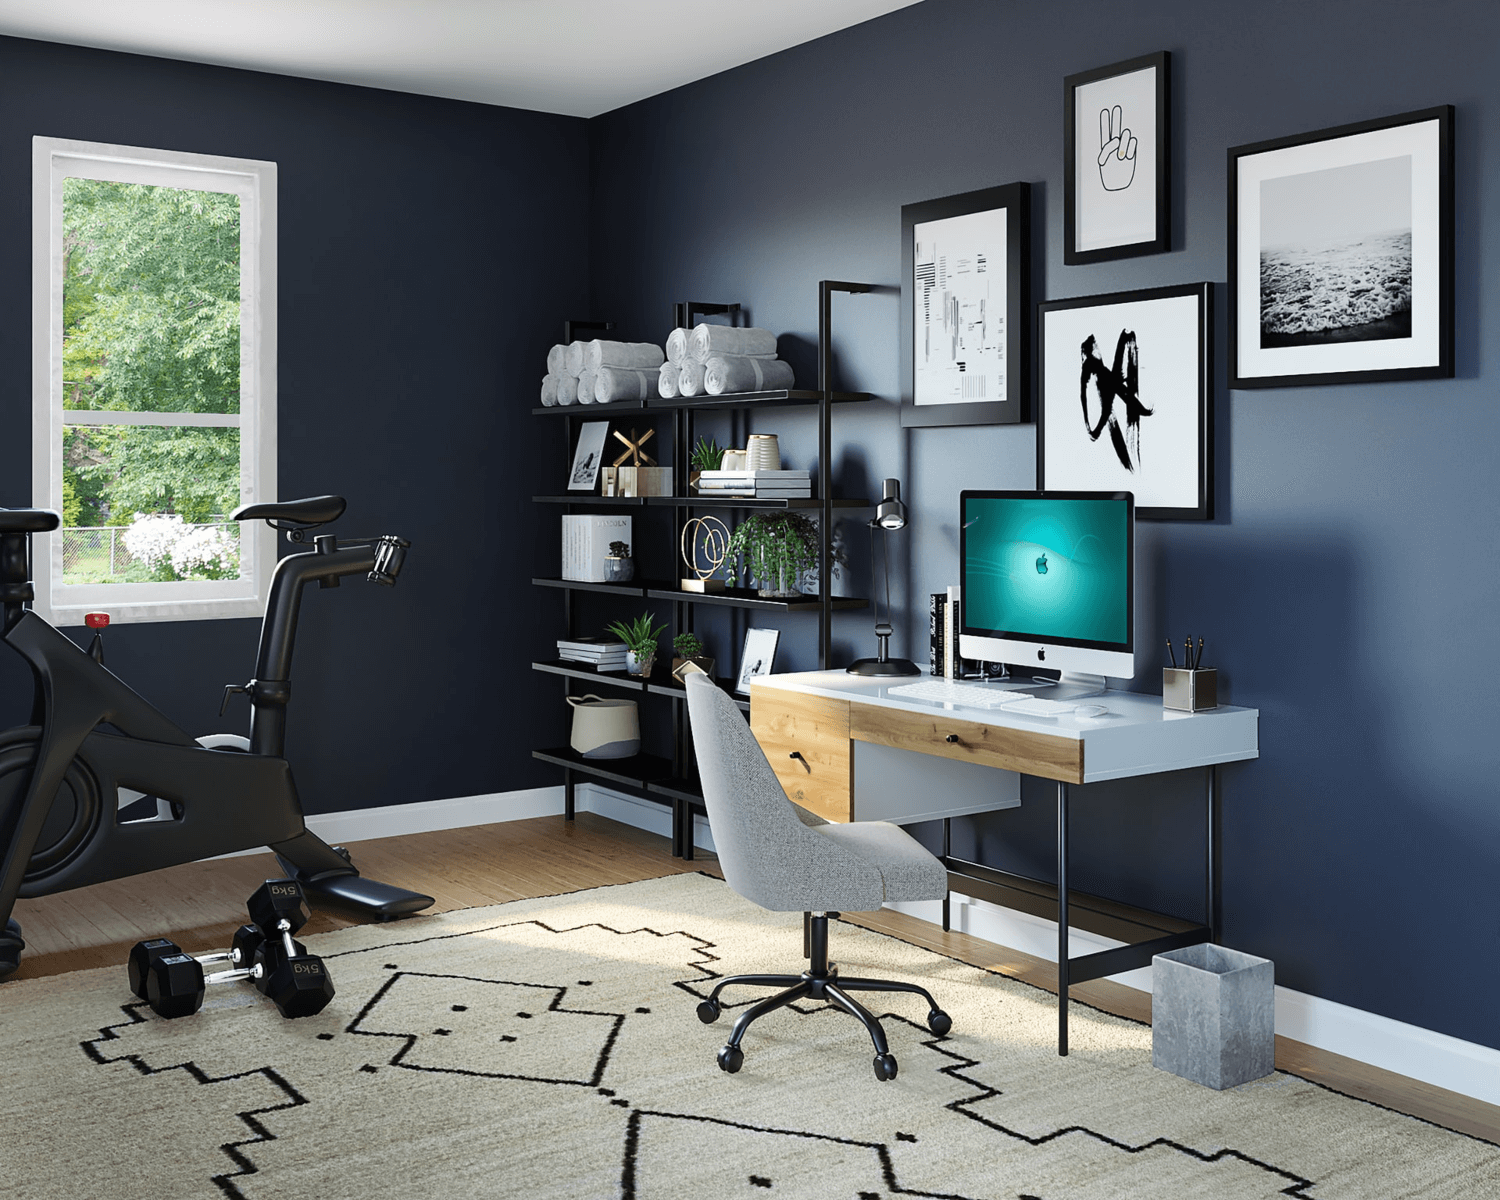 A home office designed for freelance success